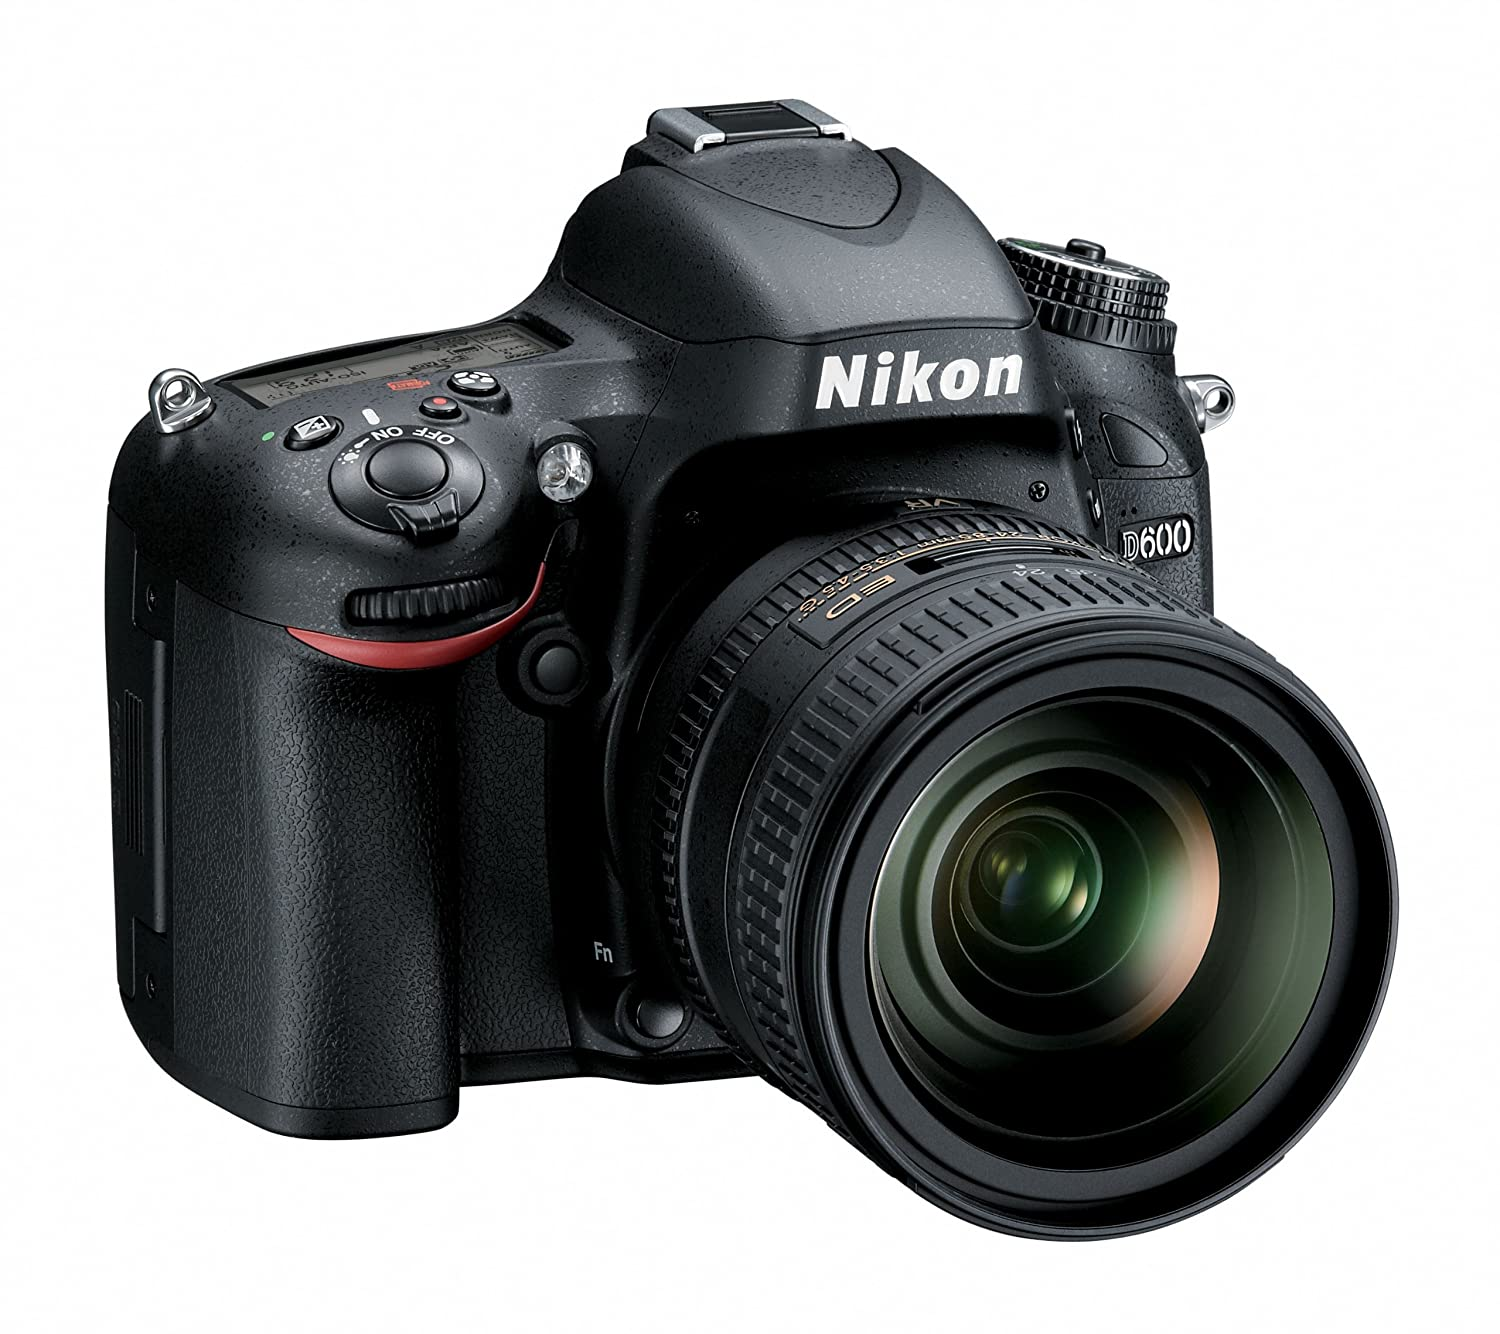 Amazon.com : Nikon D600 24.3 MP CMOS FX-Format Digital SLR Camera ...